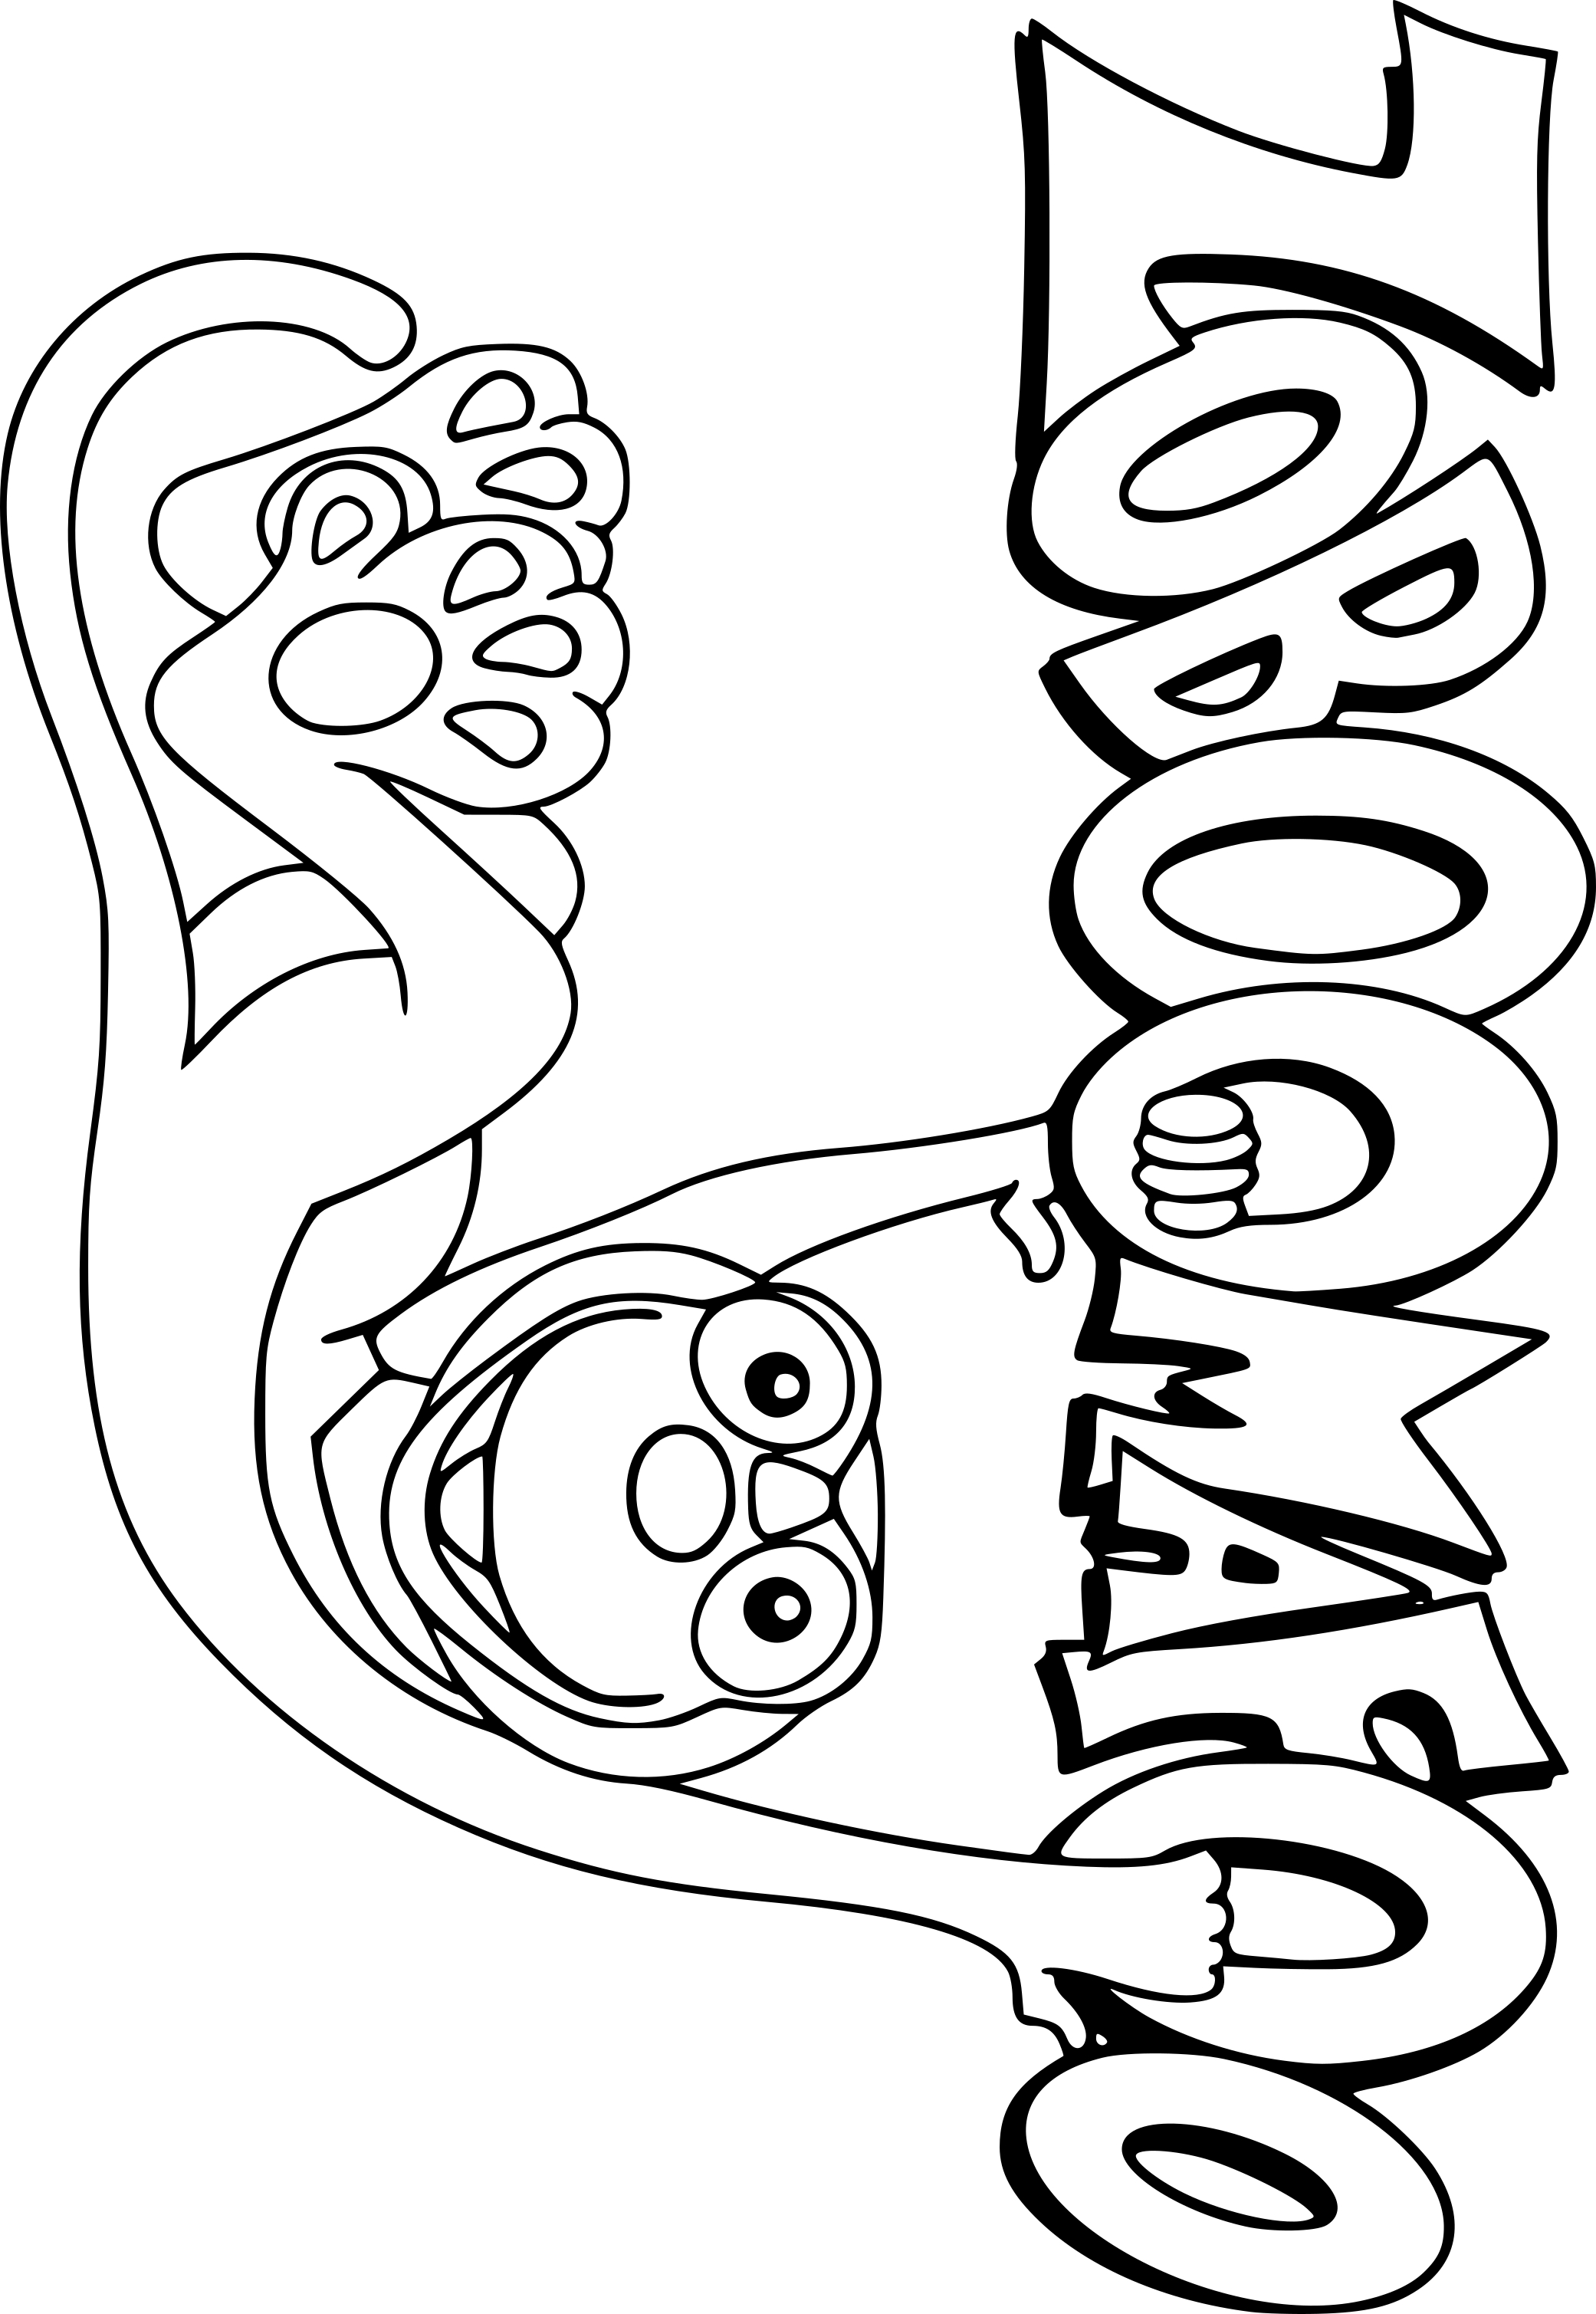 Coloriage Zoboomafoo